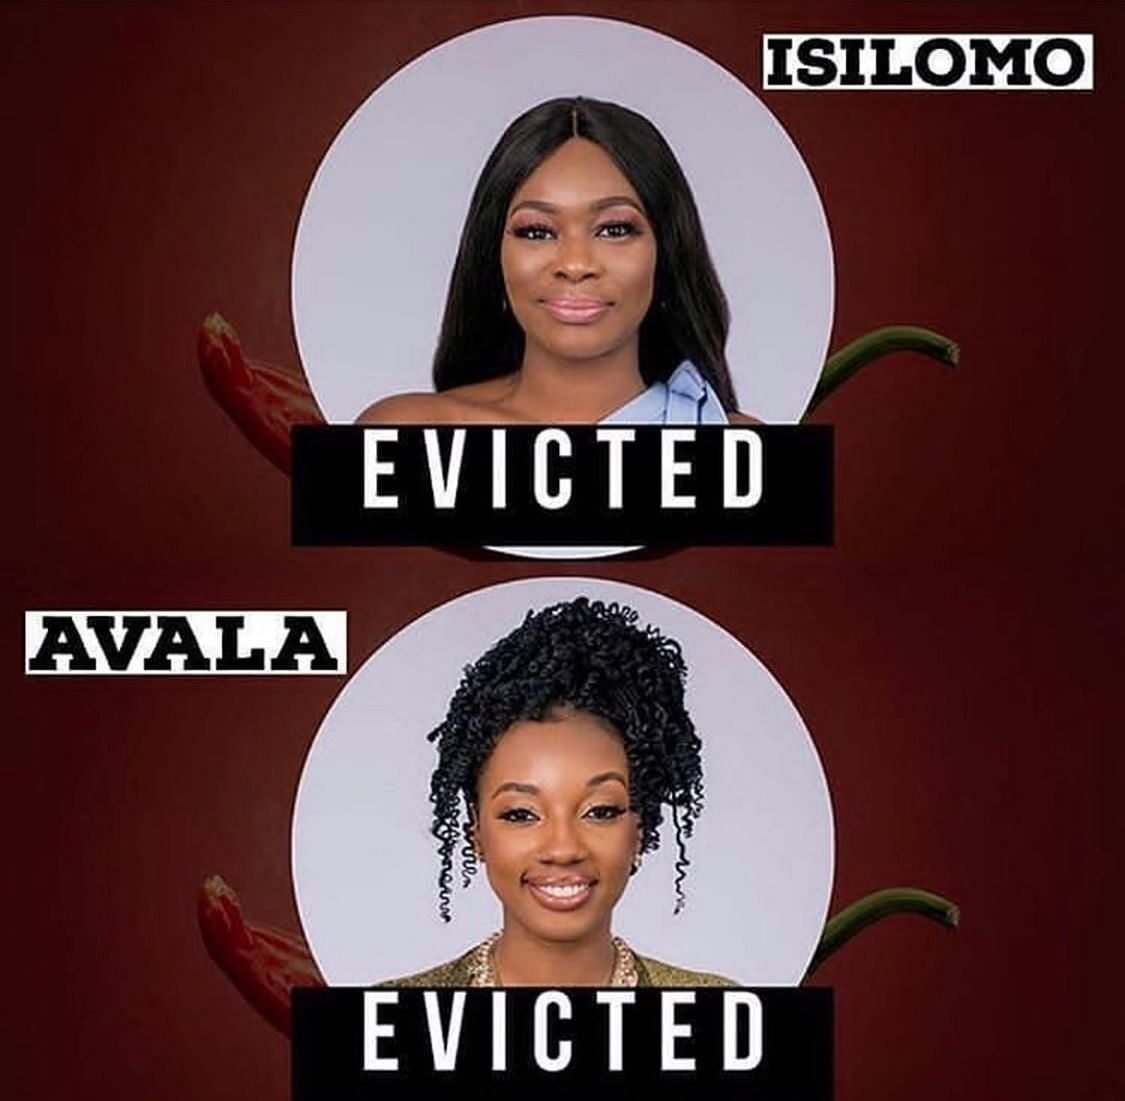 Avala and Isilomo Evicted